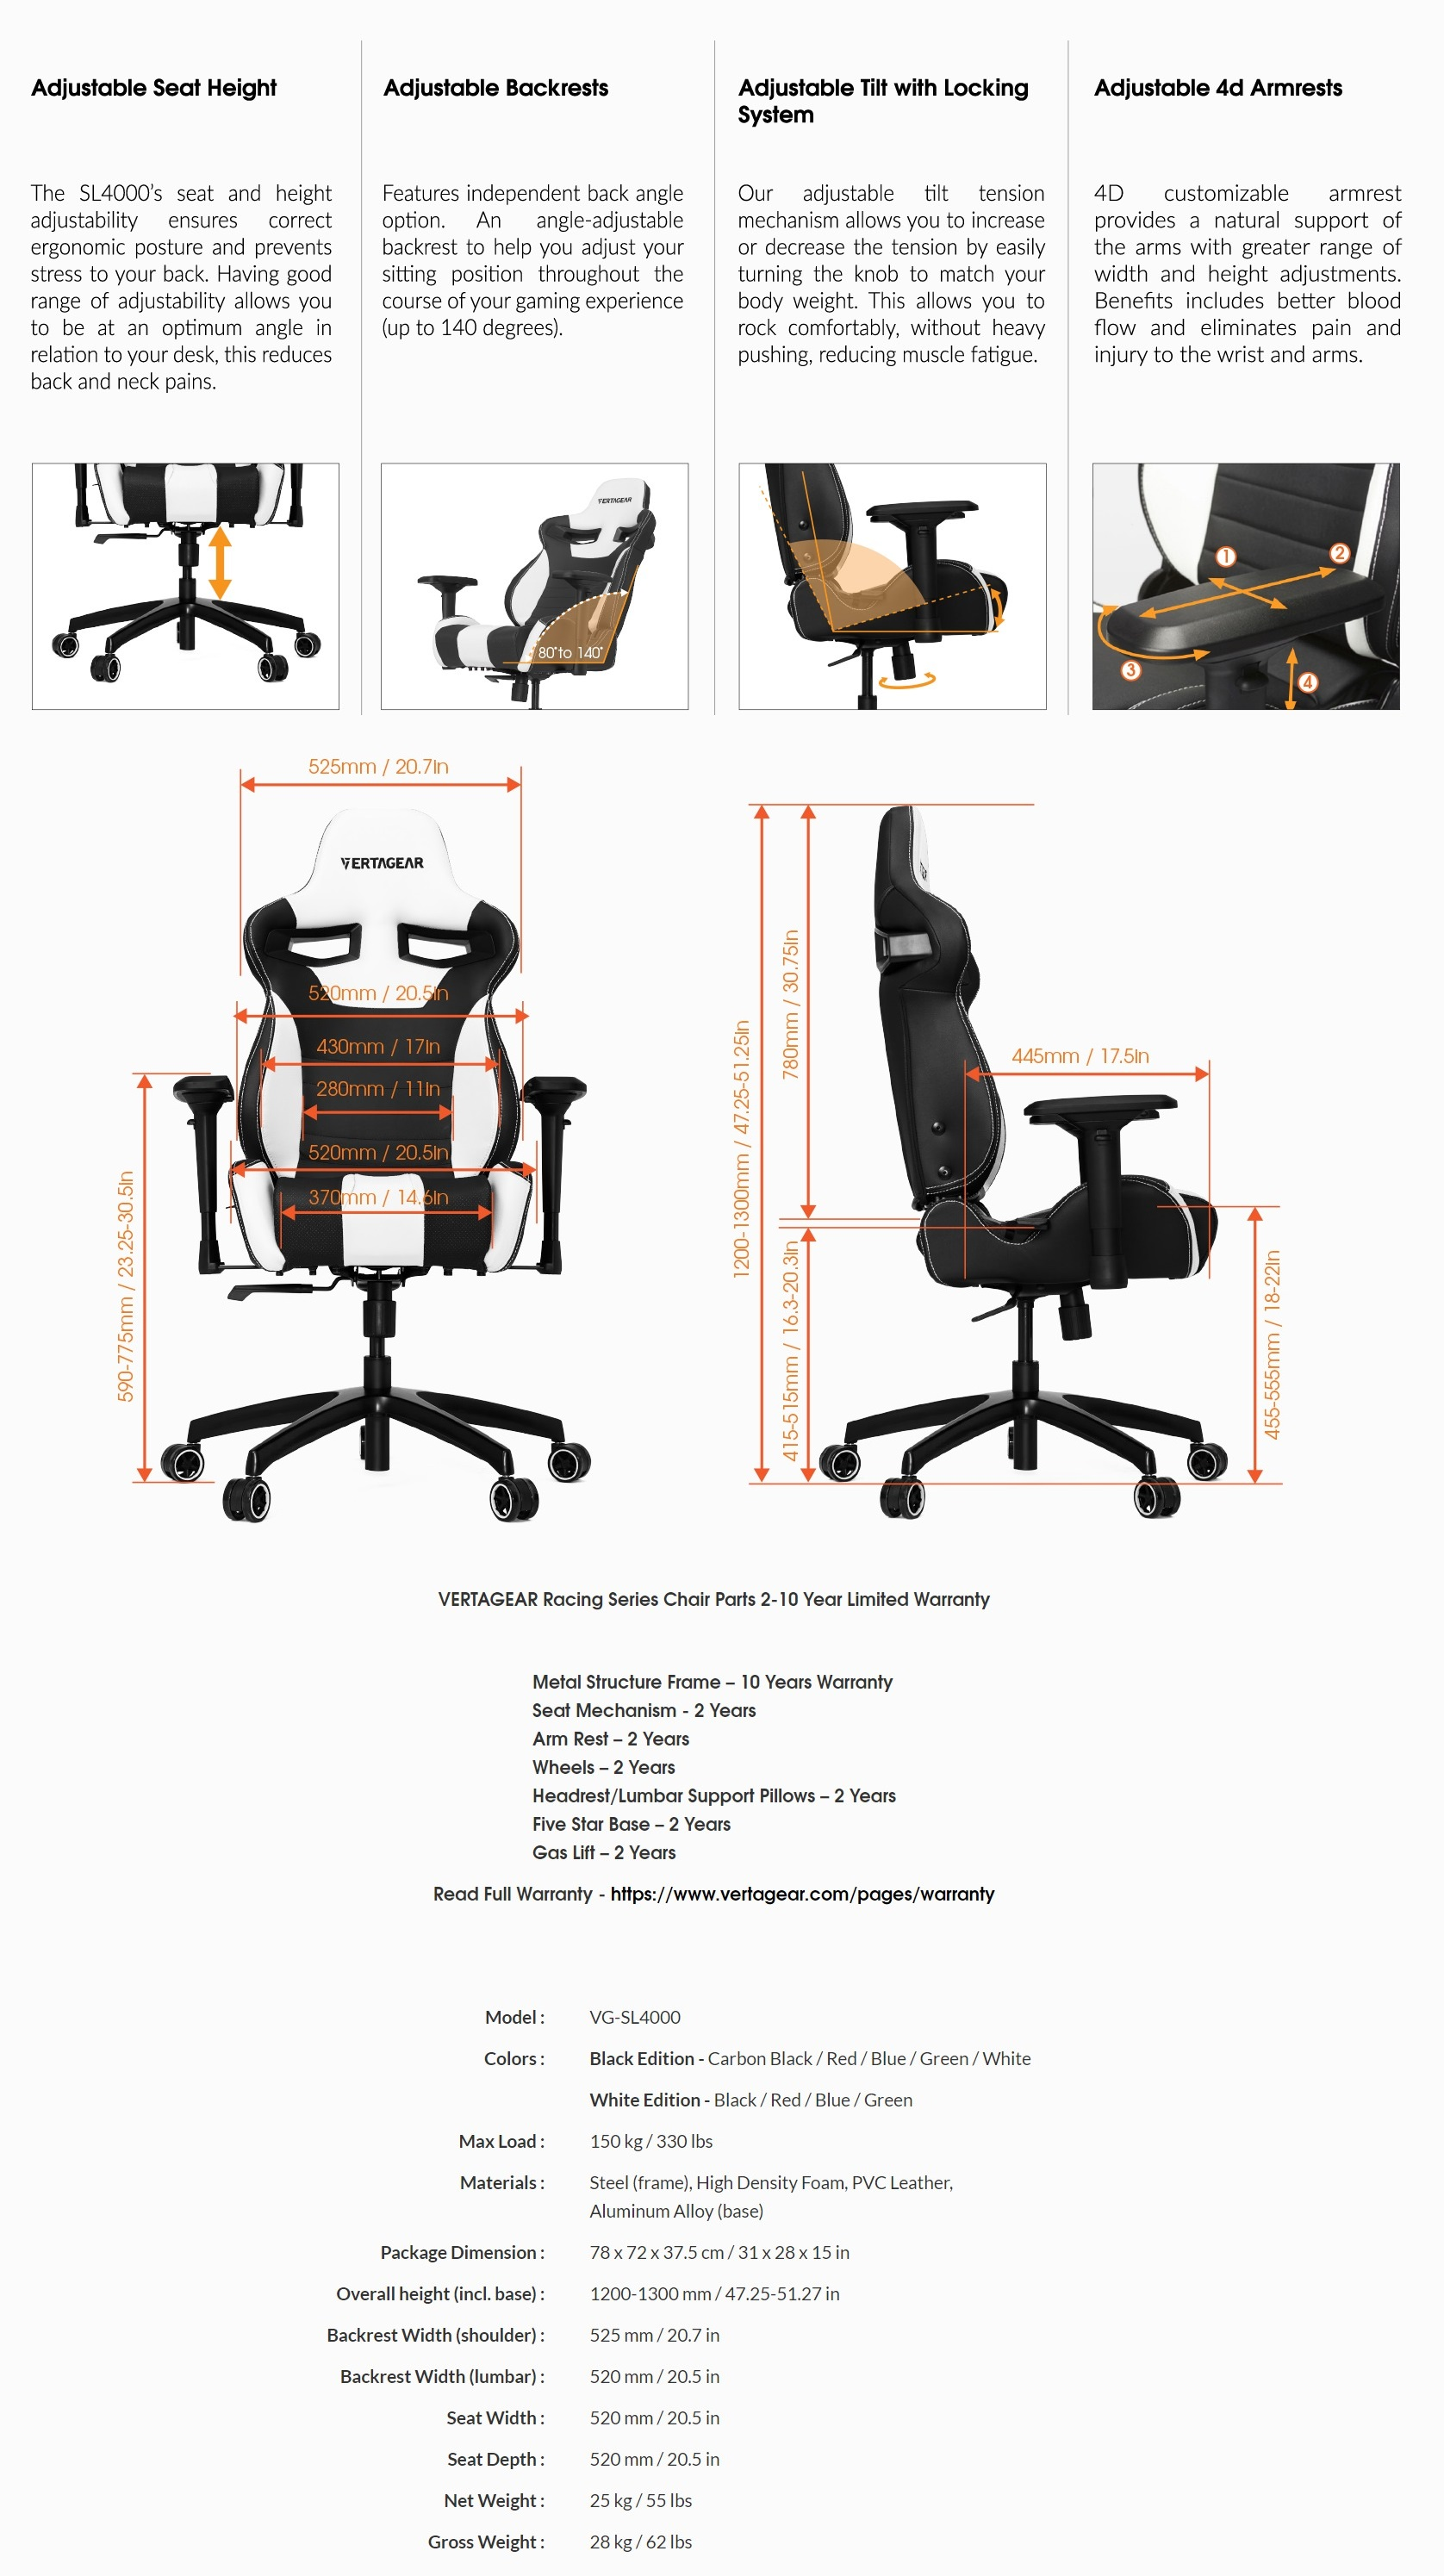 A large marketing image providing additional information about the product Vertagear Racing Series S-Line SL4000 Gaming Chair Black/Blue Edition - Additional alt info not provided